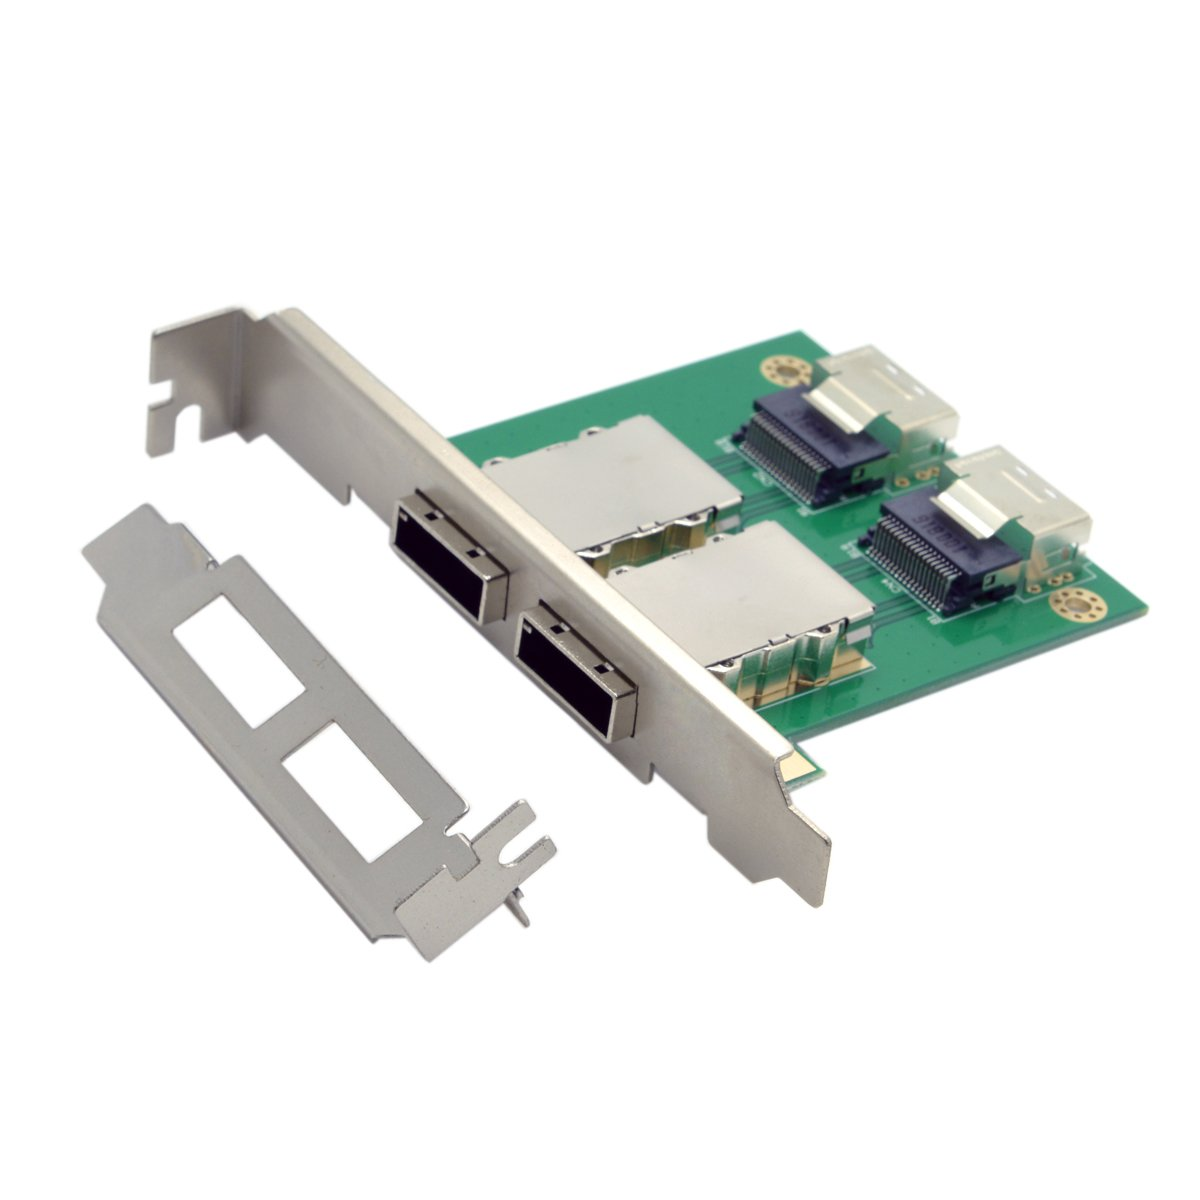 JSER Dual Ports Mini SAS SFF-8088 To SAS 36Pin SFF-8087 PCBA Female Adapter With PCI Bracket